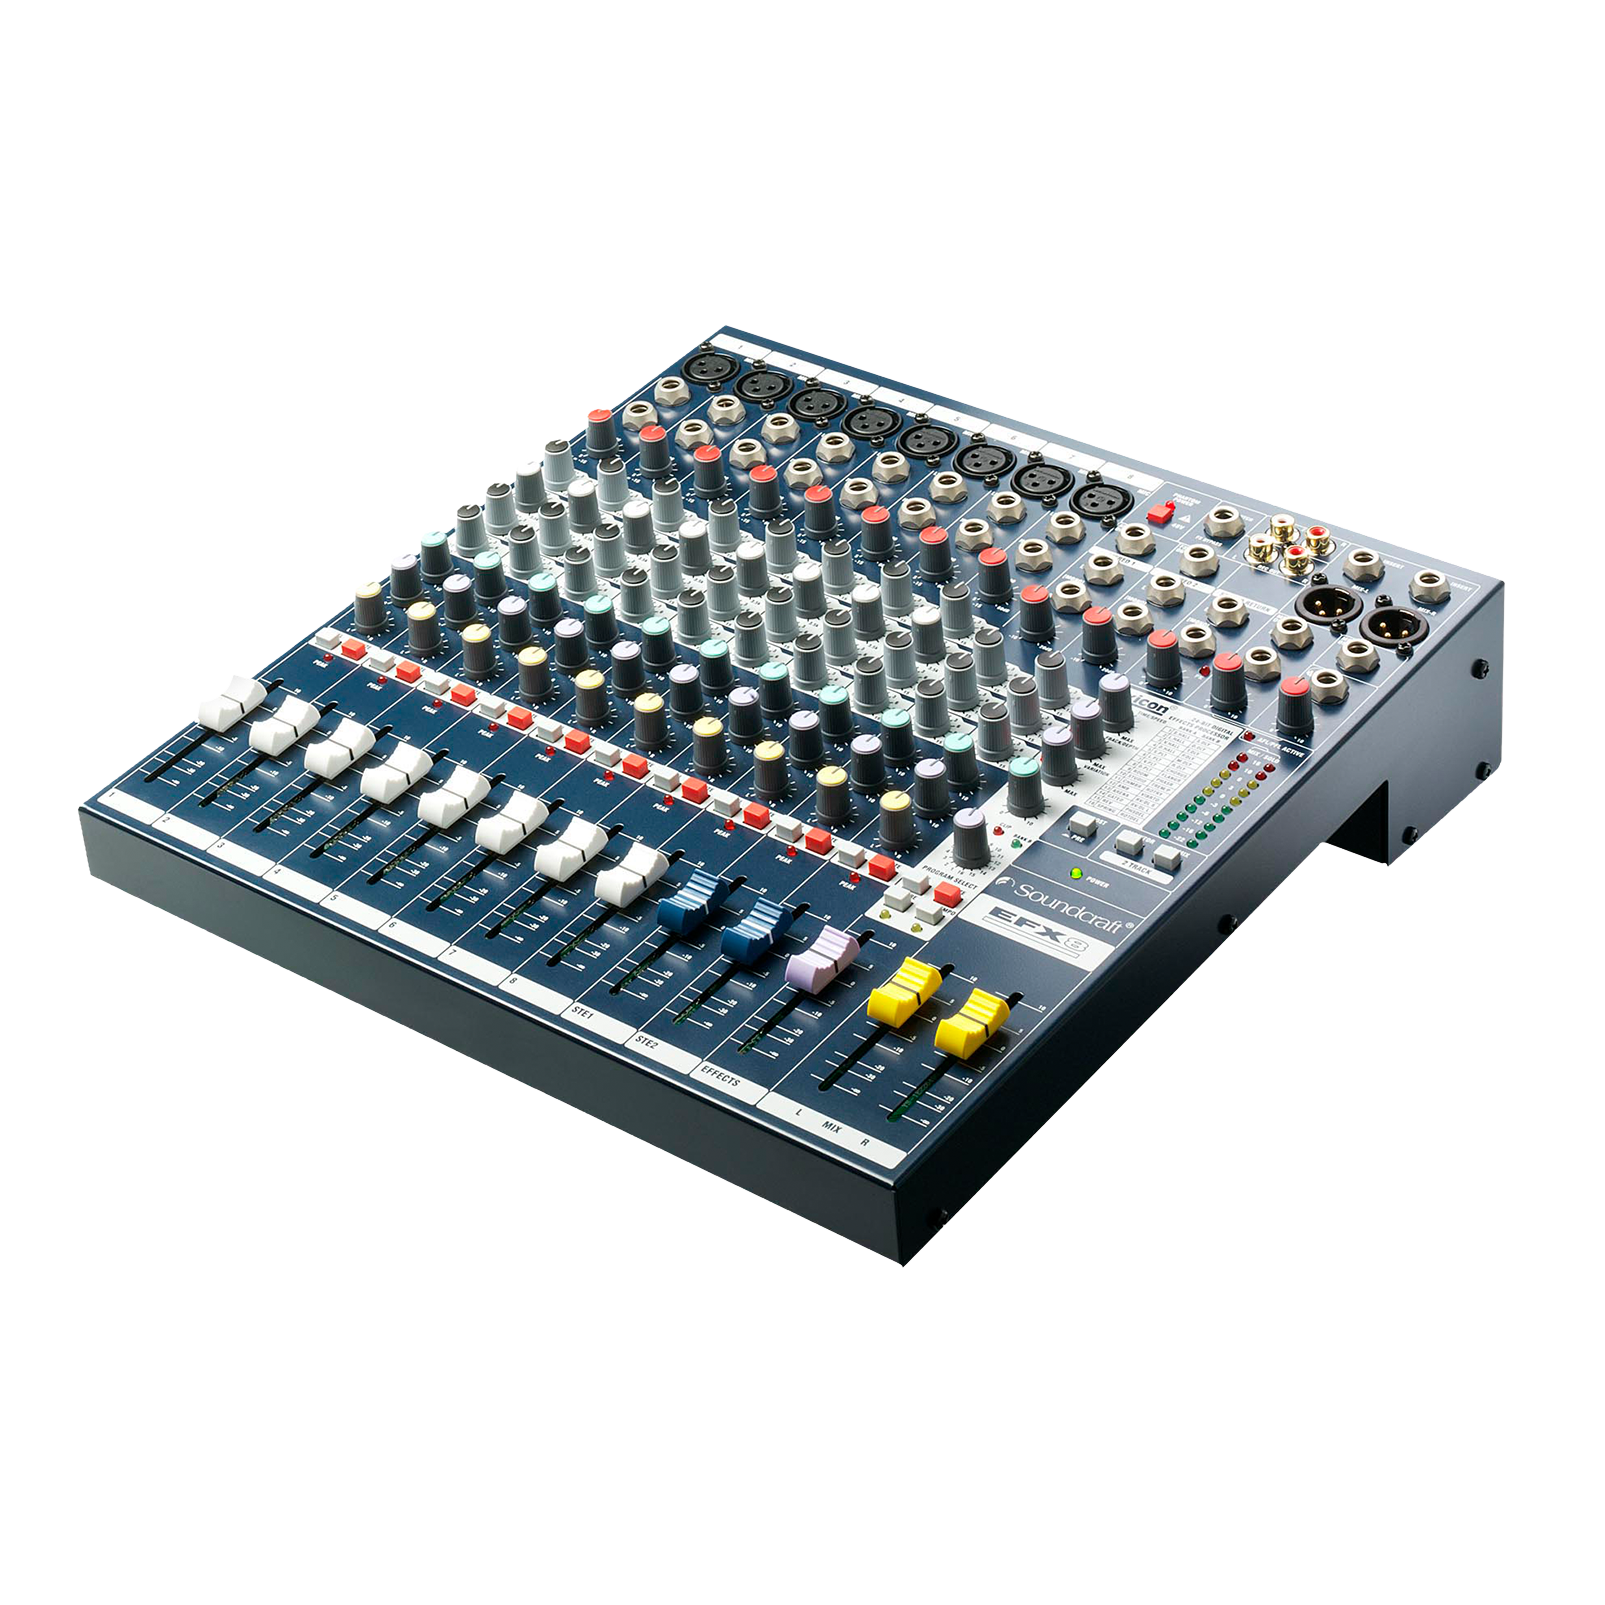 EFX8 - Dark Blue - Compact analogue 8 channel mixer with built-in effects - Hero